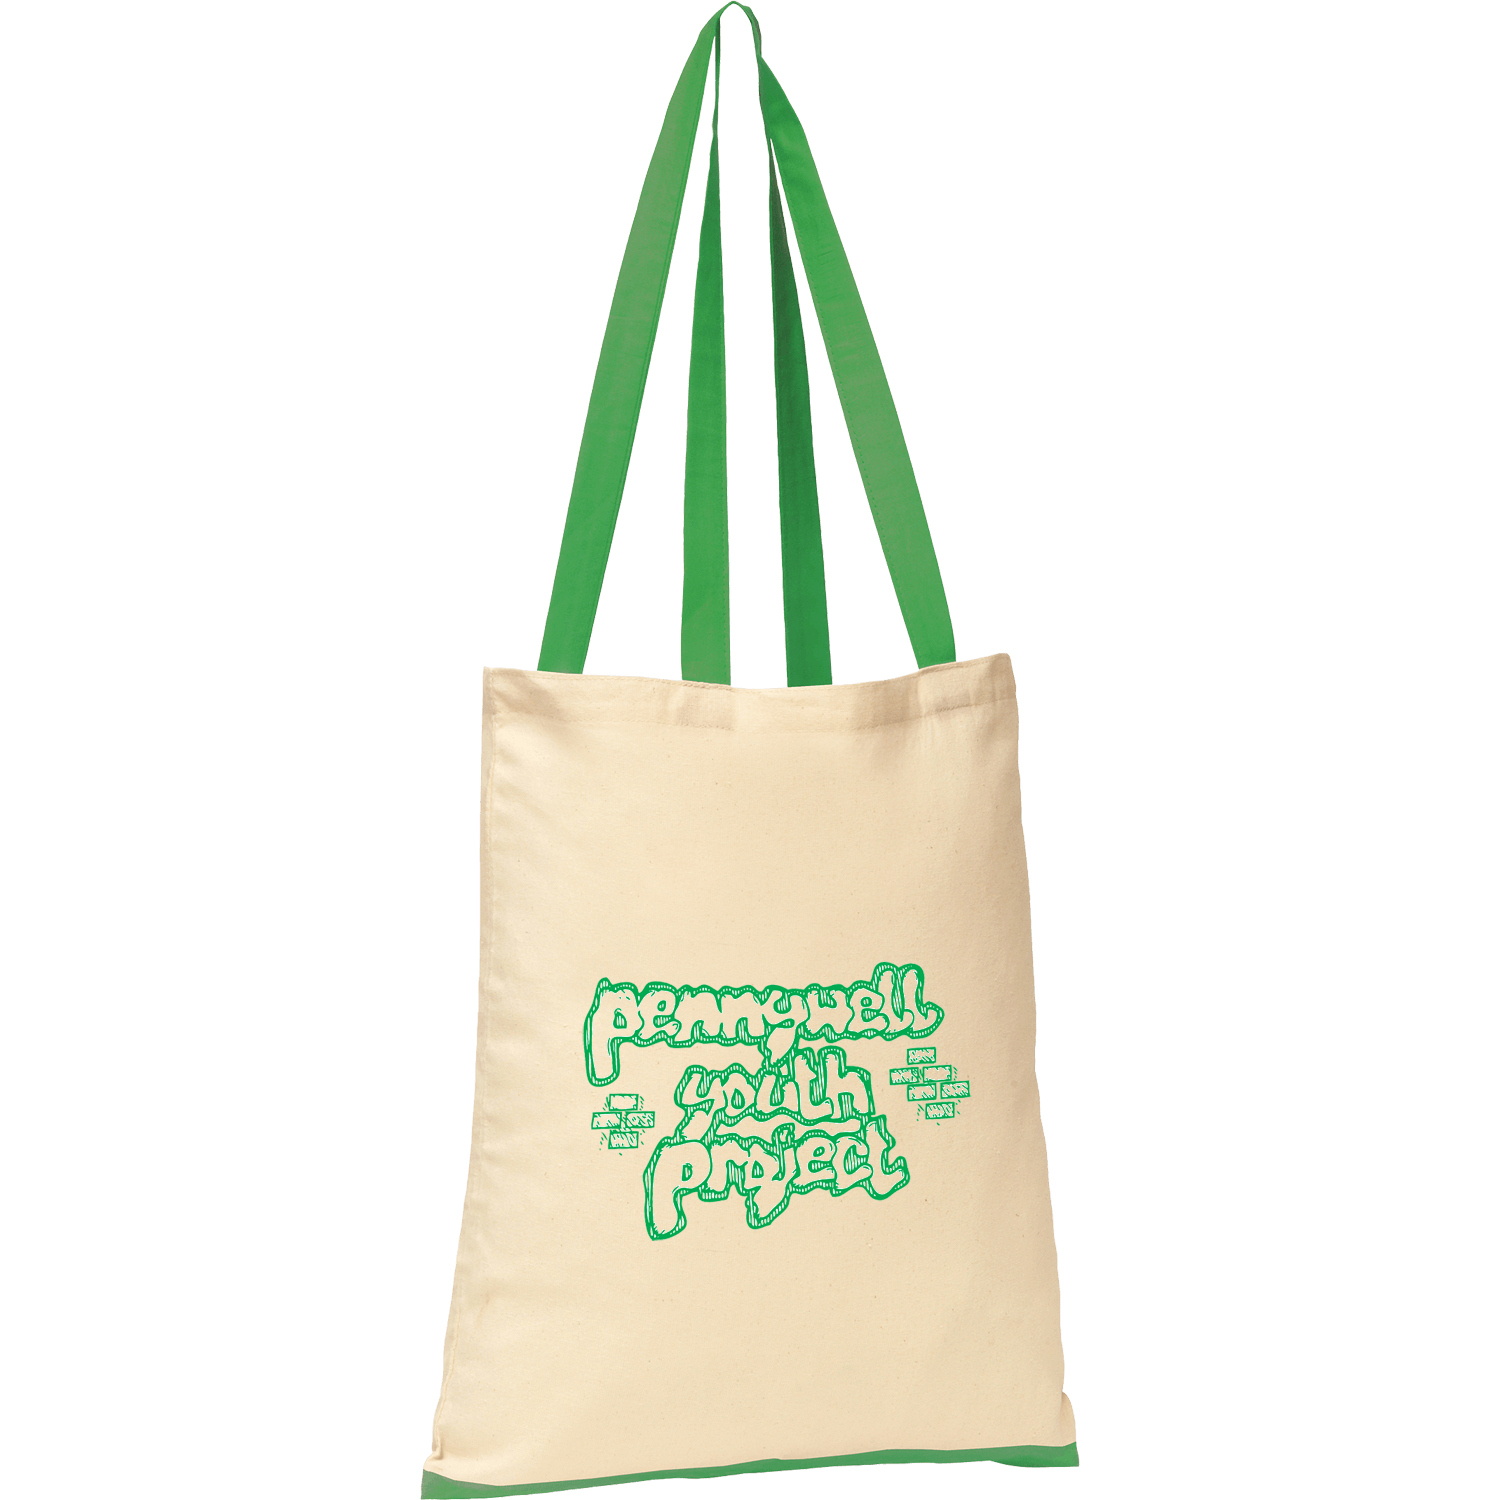 Conference Cotton Tote Bag